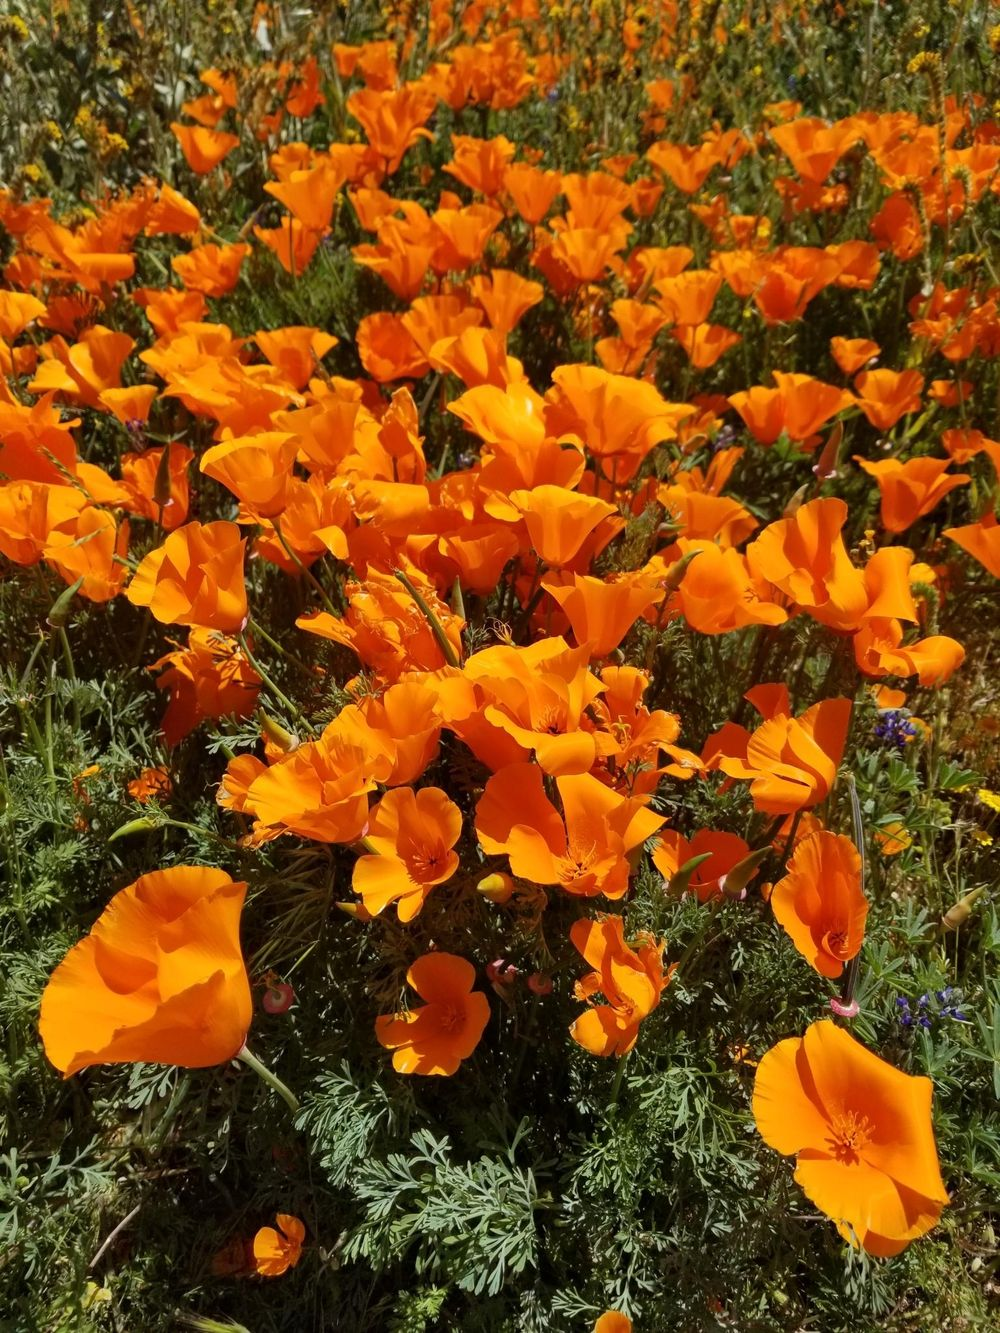 Southern California Wildflowers - image 2 - student project